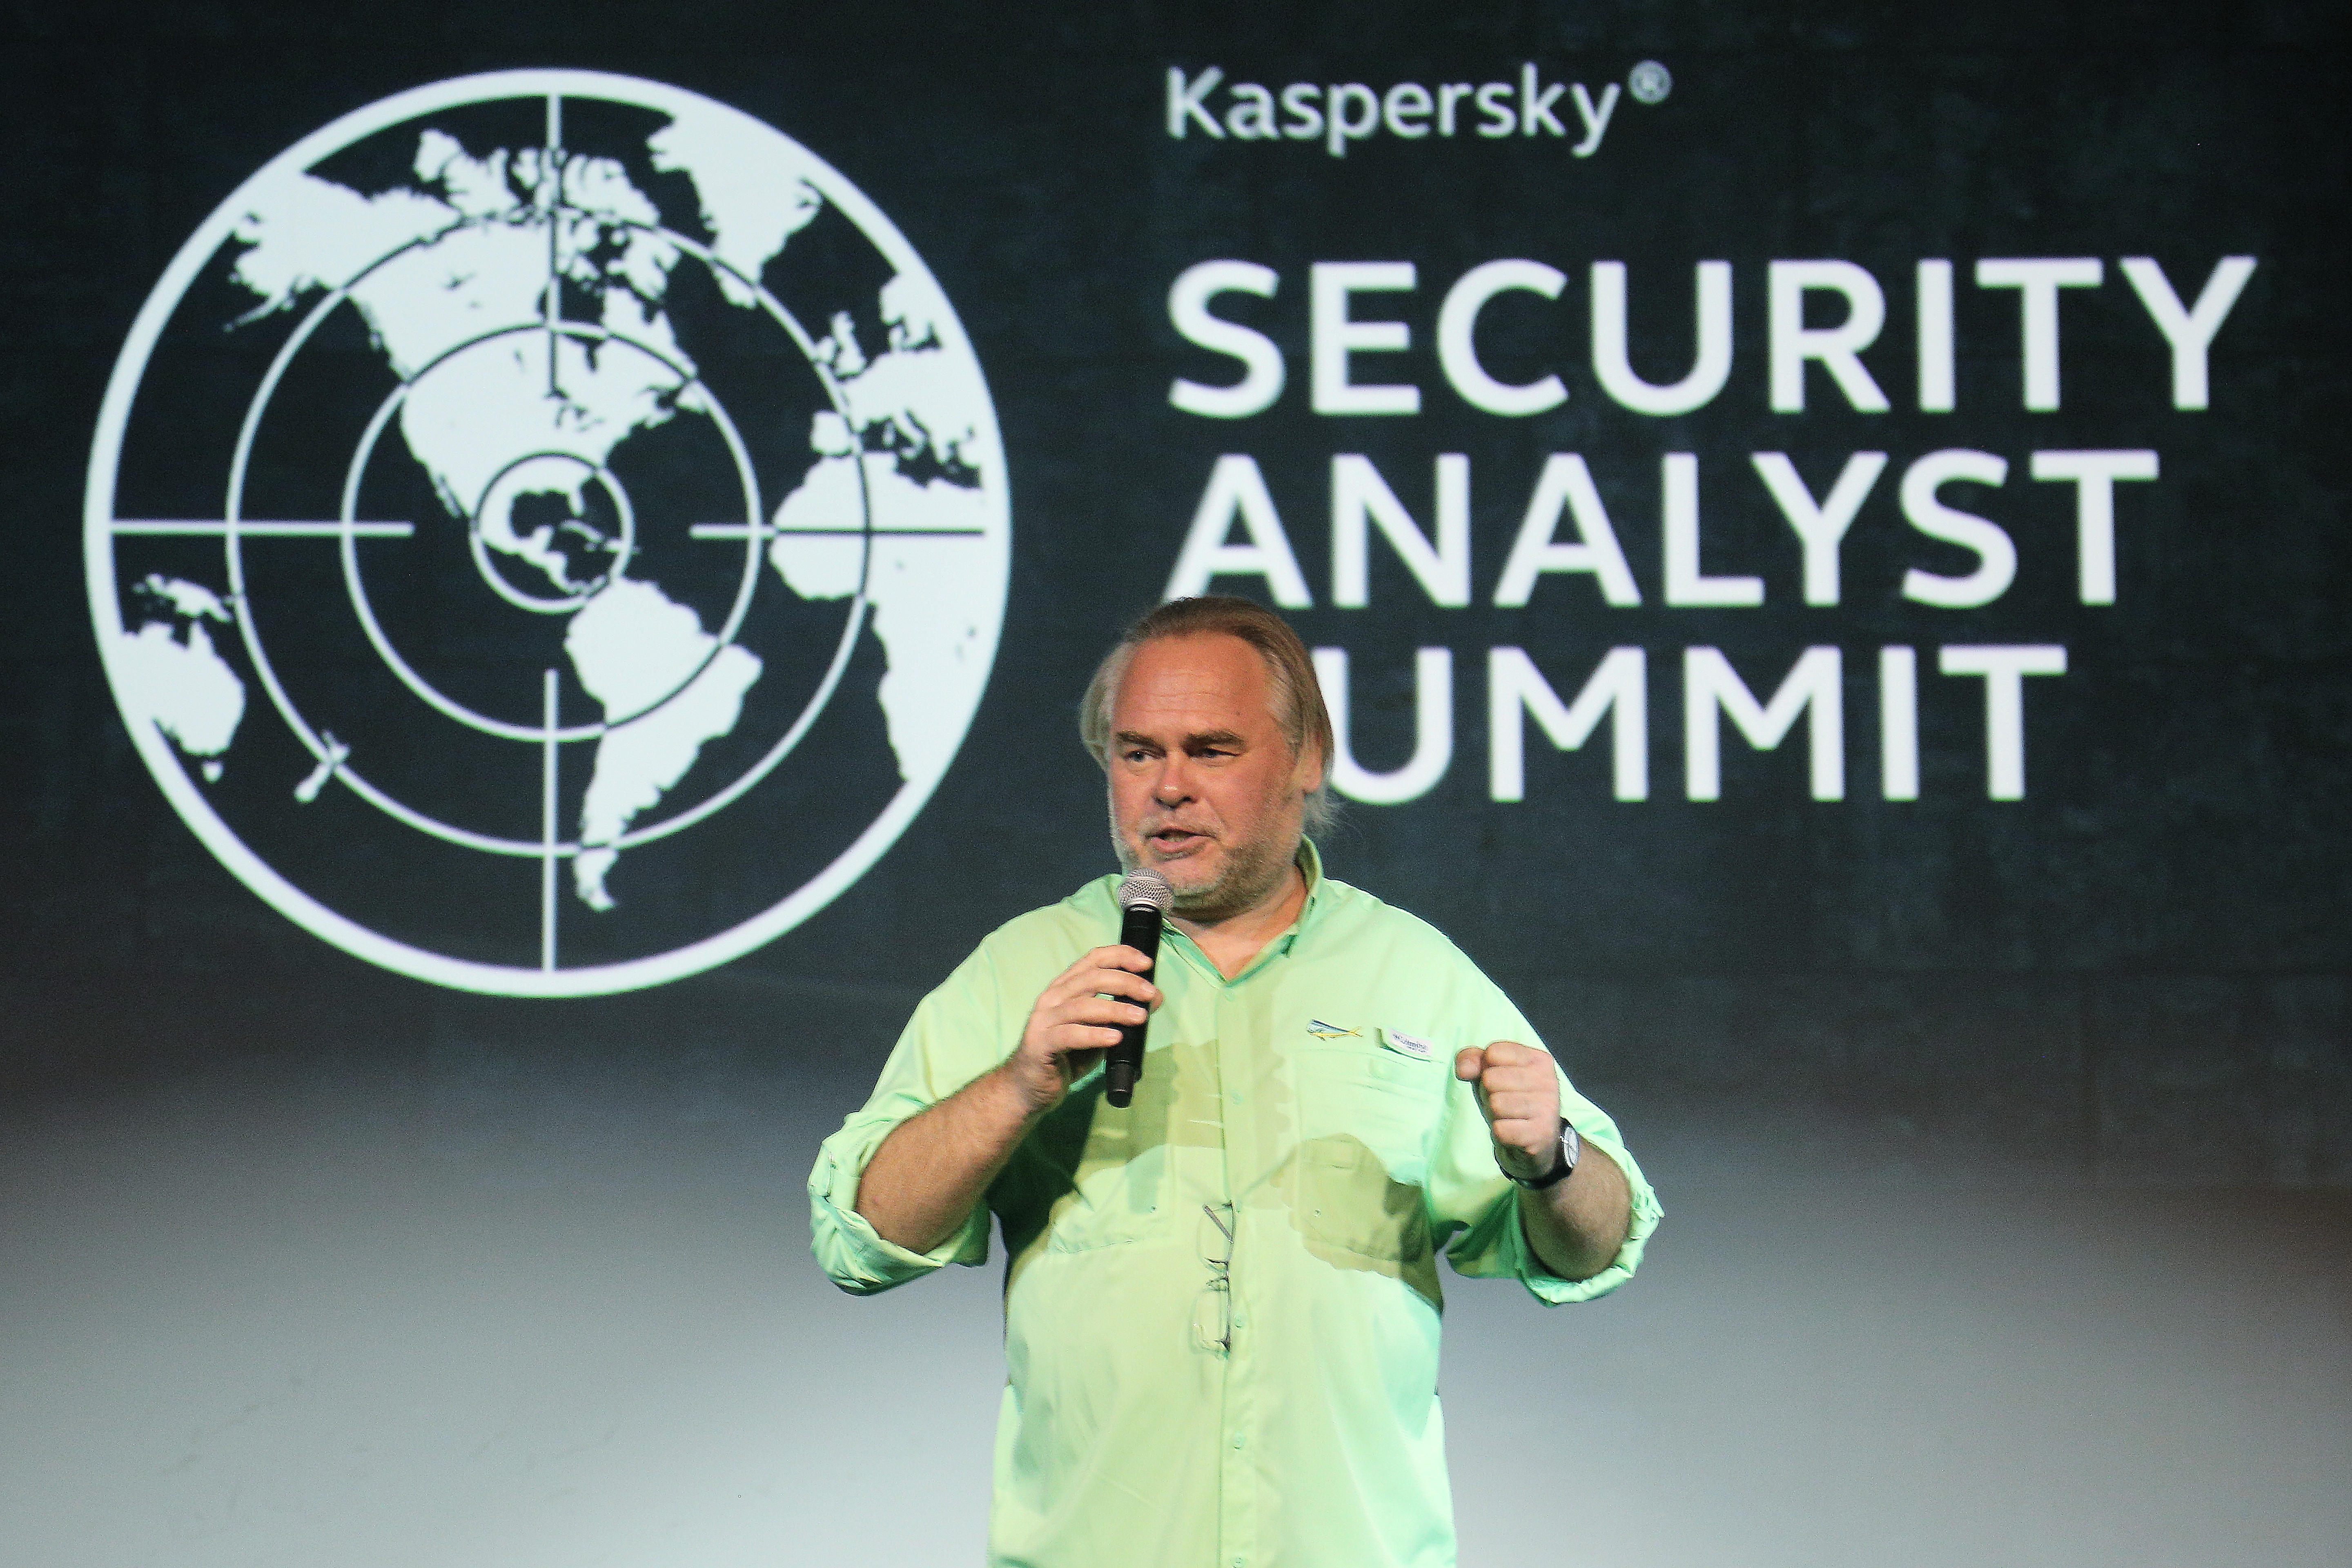 Kaspersky Security Analyst Summit 2018 - Conference Day One